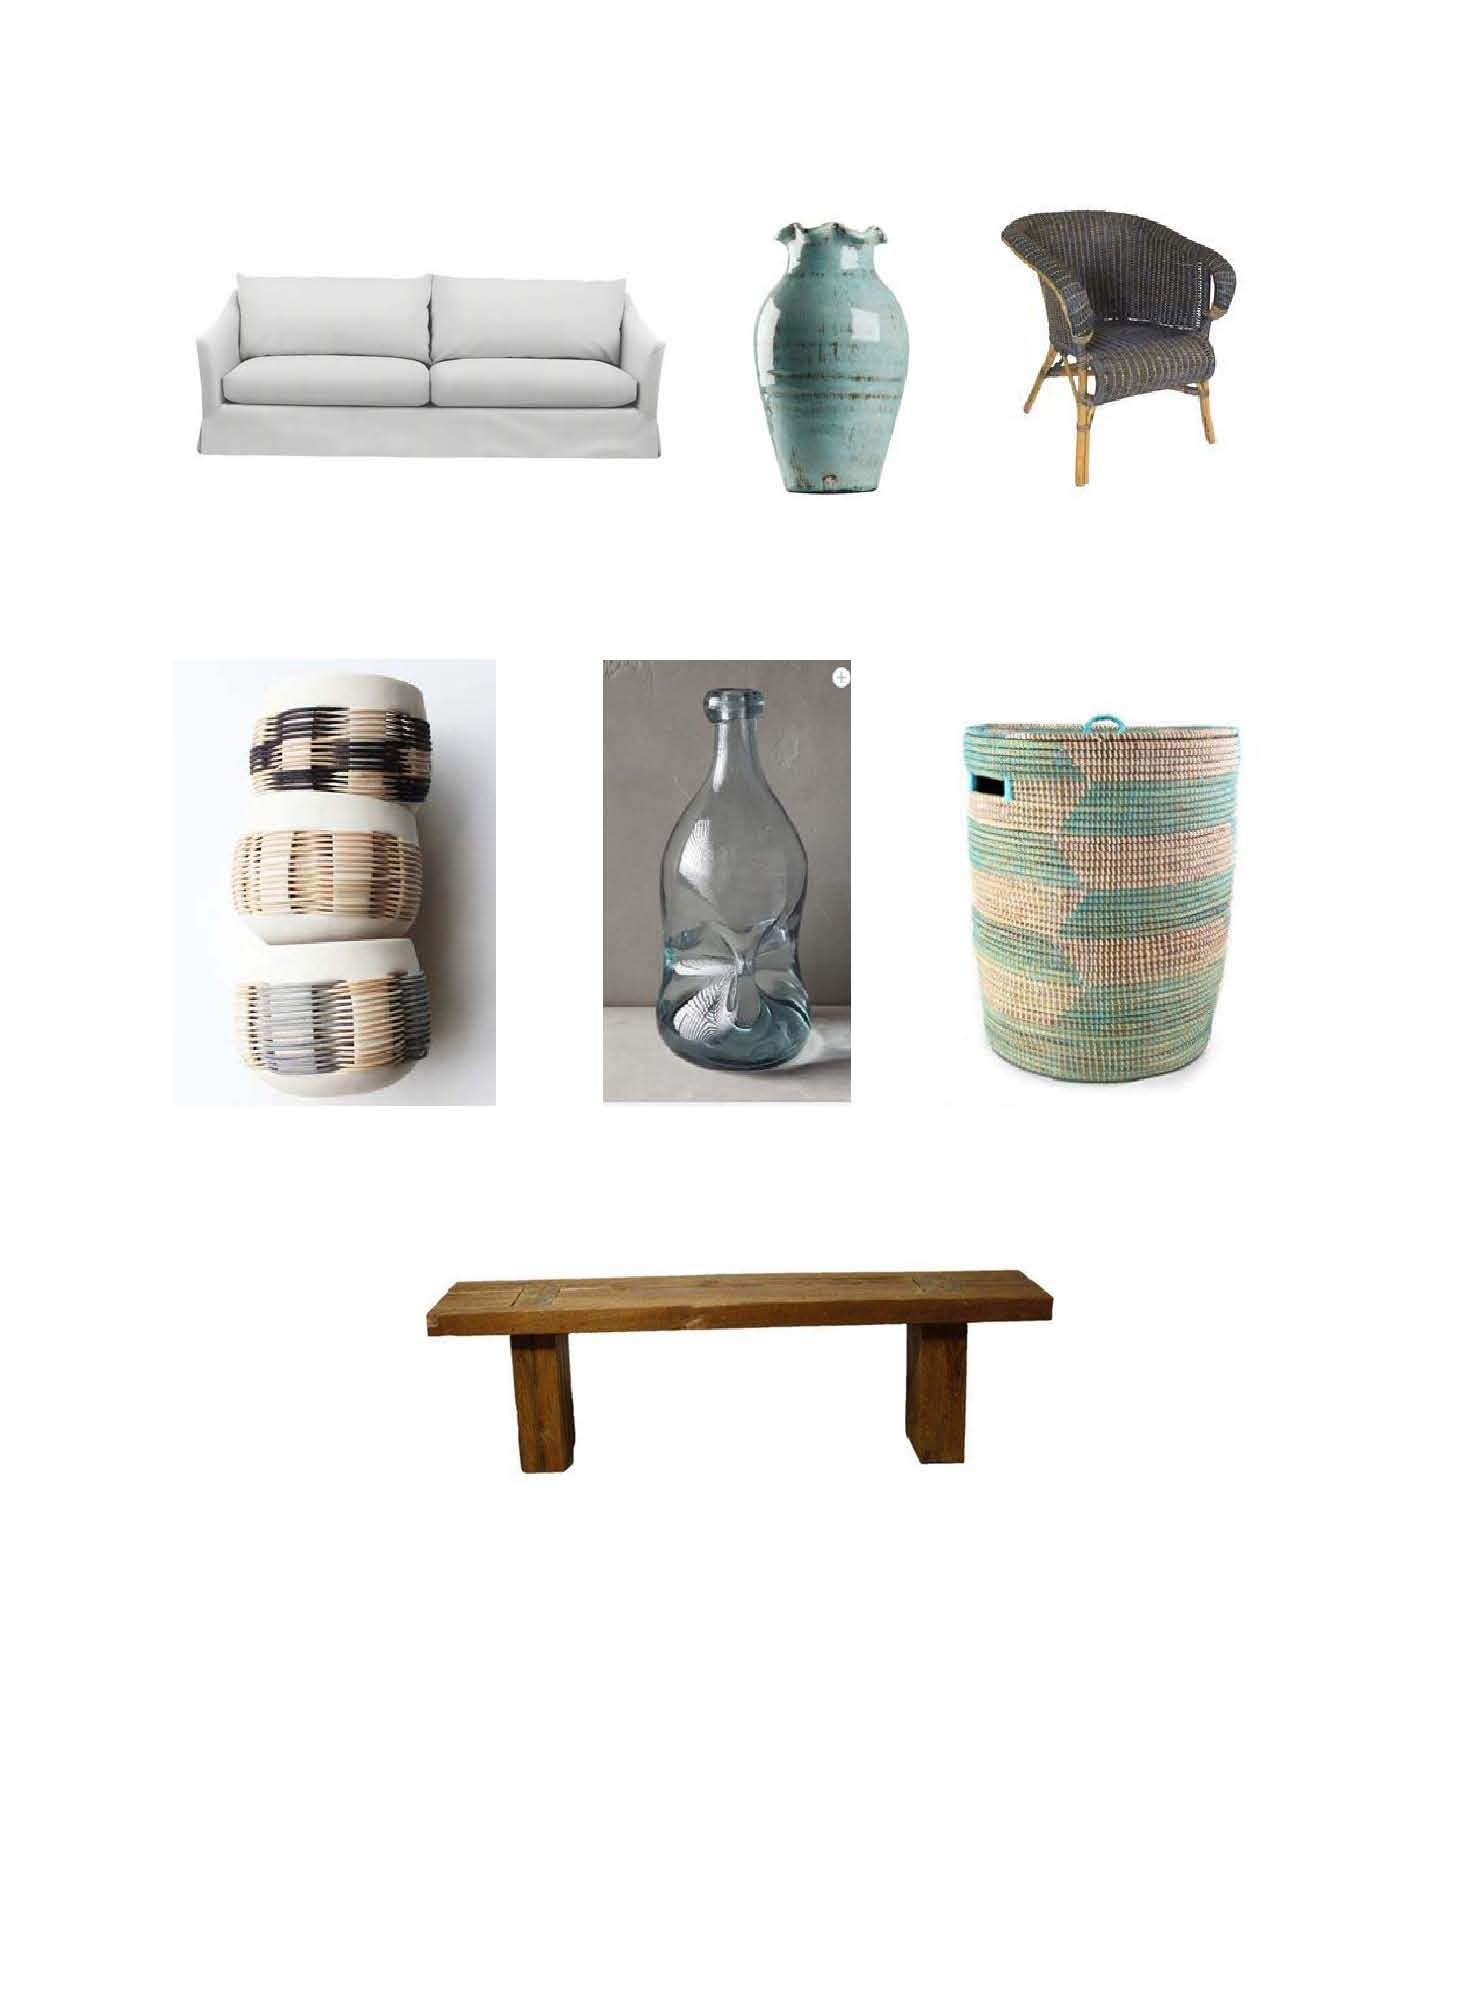 Halsten Sofa : Serena and Lily.  Blue Vase : Layla Grayce,  Wicker and Reed Arm Chair : Chairish,  Pigeon Toe Woven Lanterns : Mille,   Pinched Glass Vase : Antropologie,  Senegalese Sahara Baske t: Mille,  Fillipo Bench:  One Kings Lane